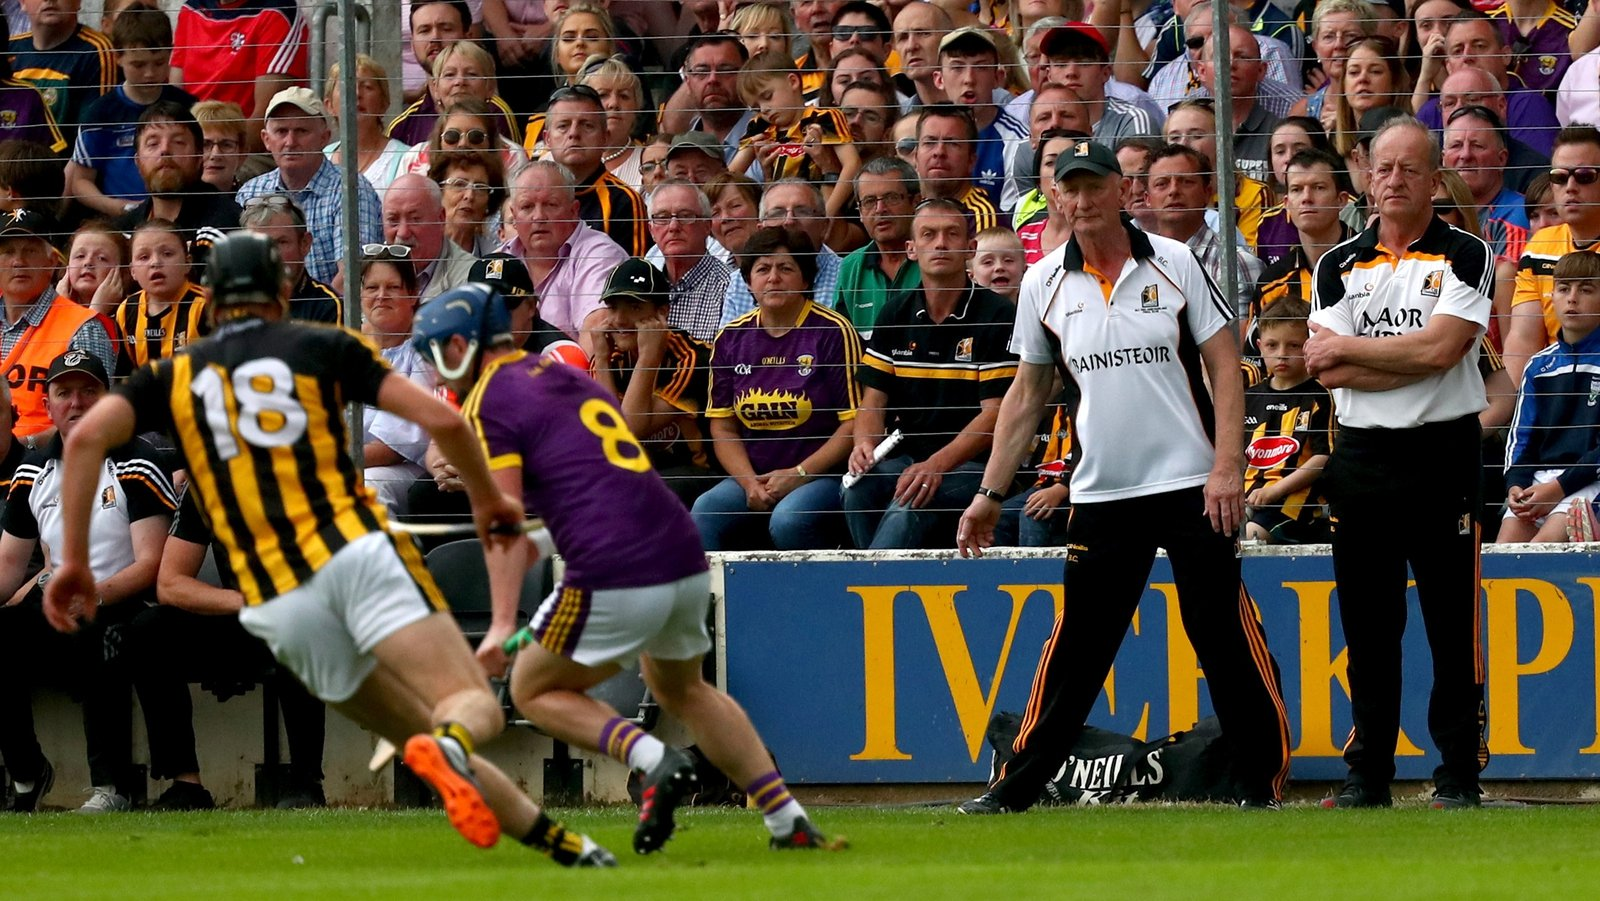 Image - Wexford v Kilkenny is a staple of the Leinster championship